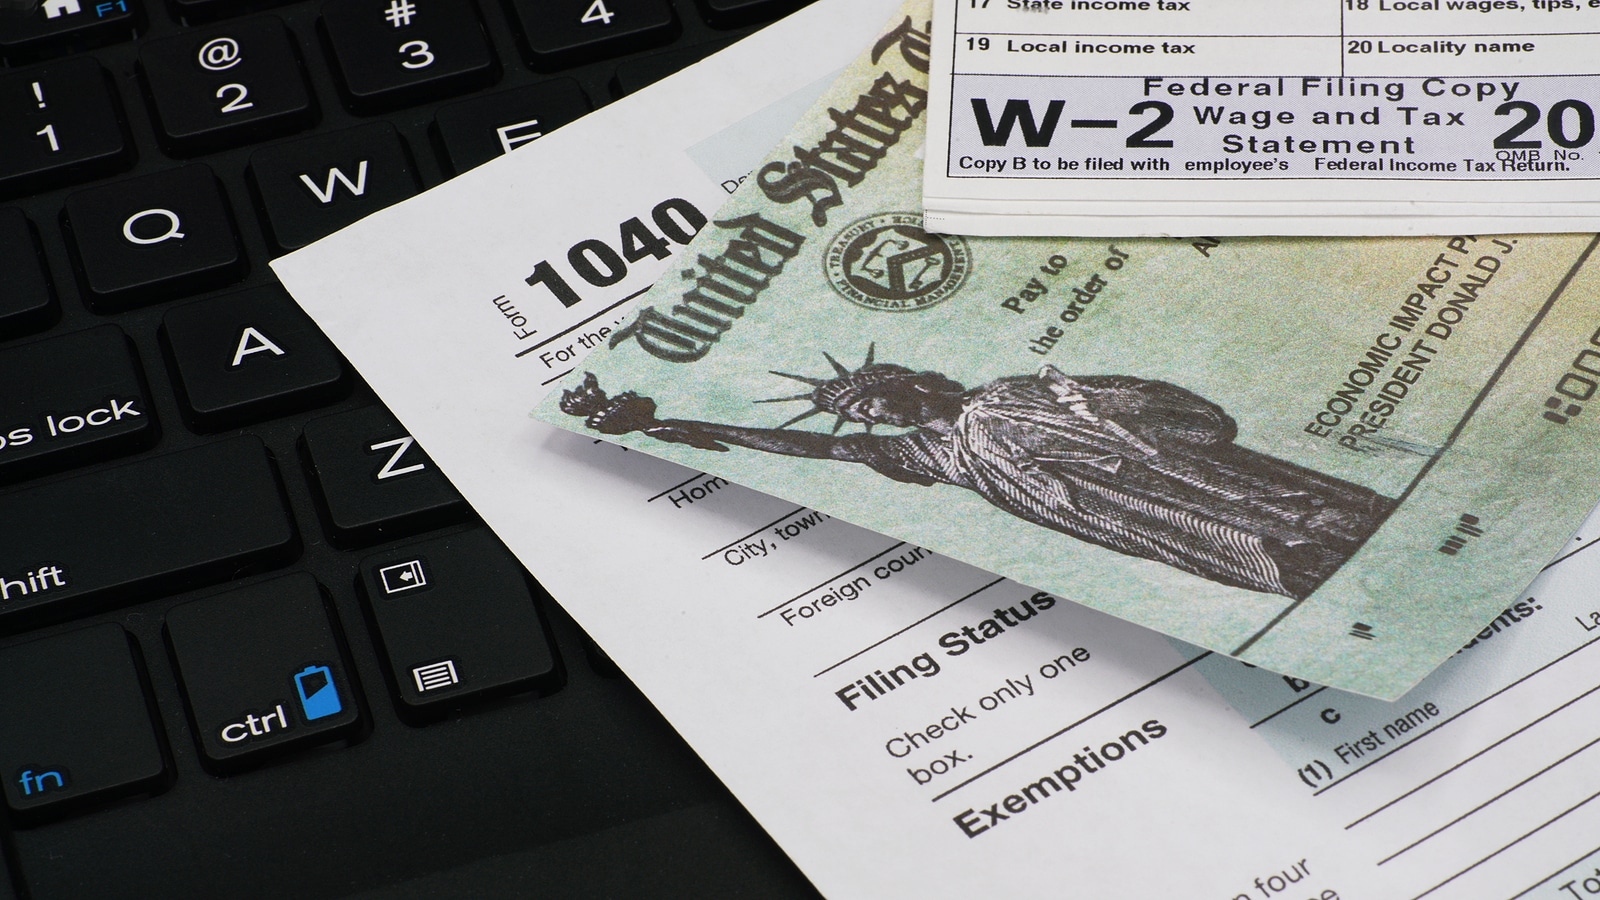 IRS Tax Forms for Filing Taxes